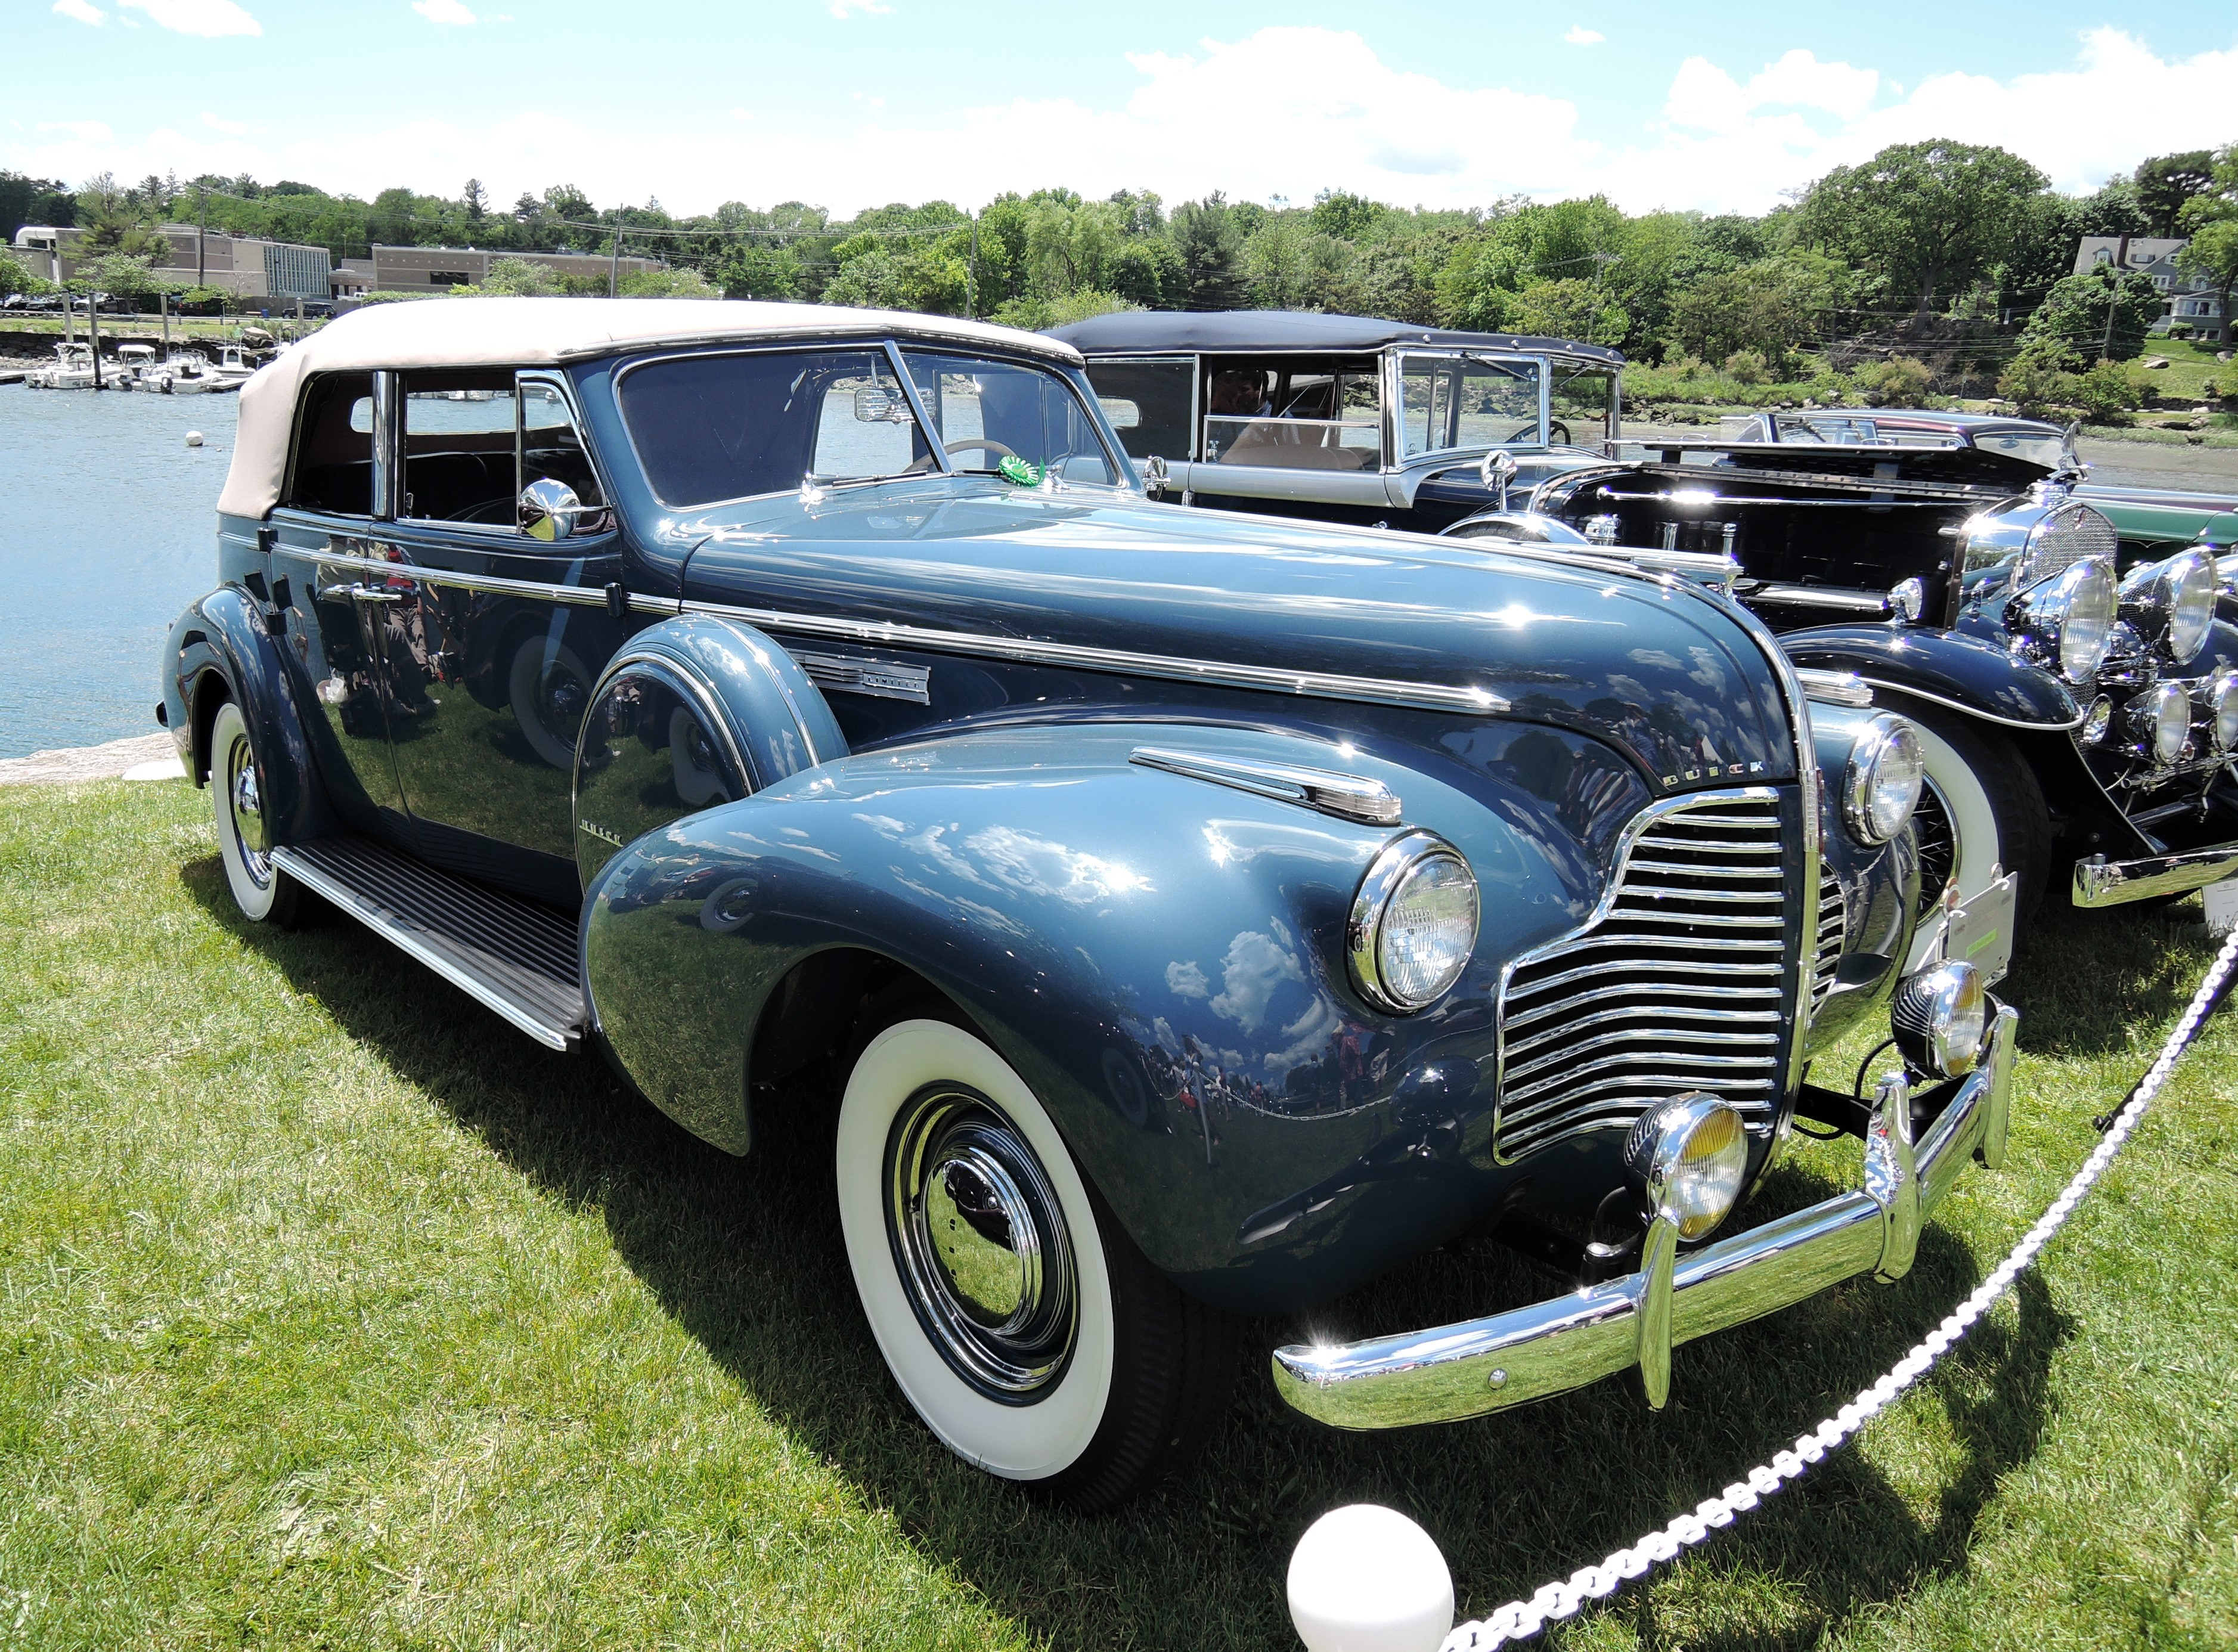 blue 1940 Buick Limited - Greenwich Concours d'Elegance 2017